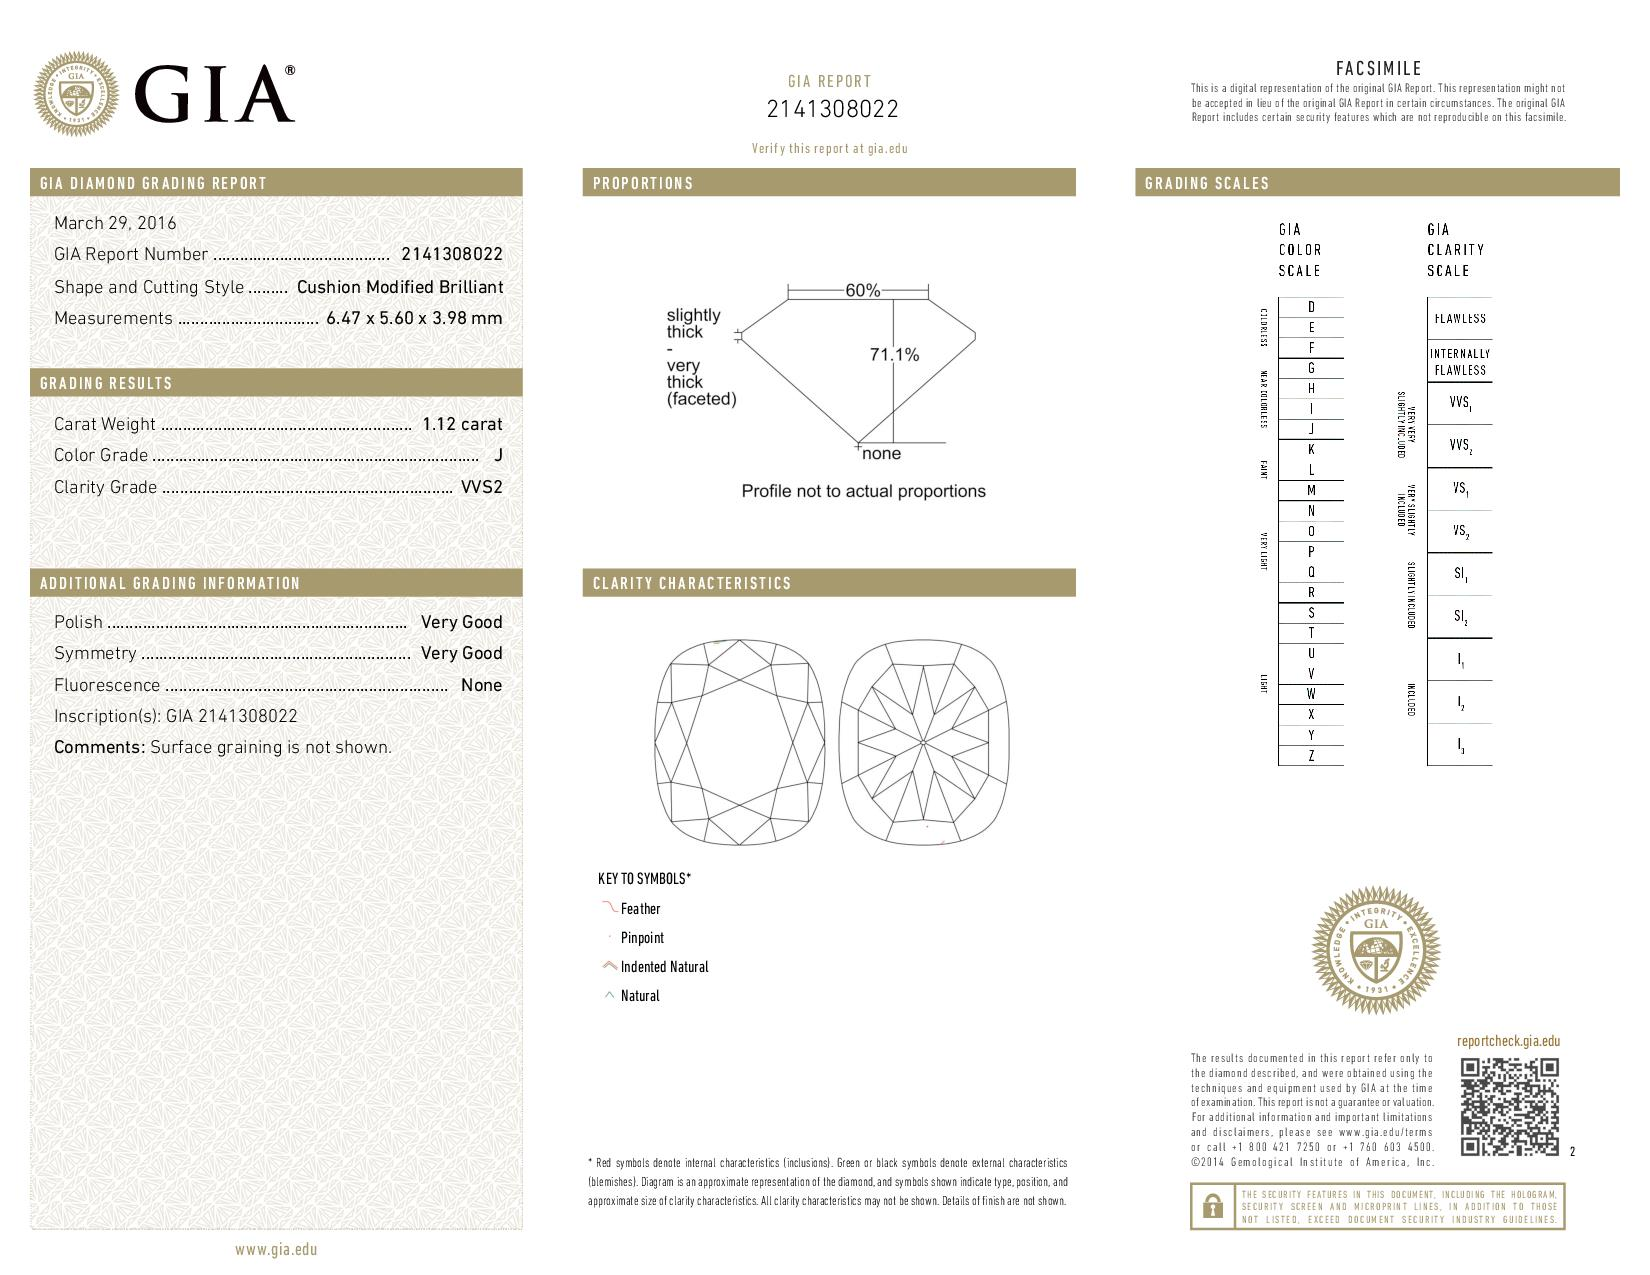 This is a 1.12 carat cushion shape, J color, VVS2 clarity natural diamond accompanied by a GIA grading report.